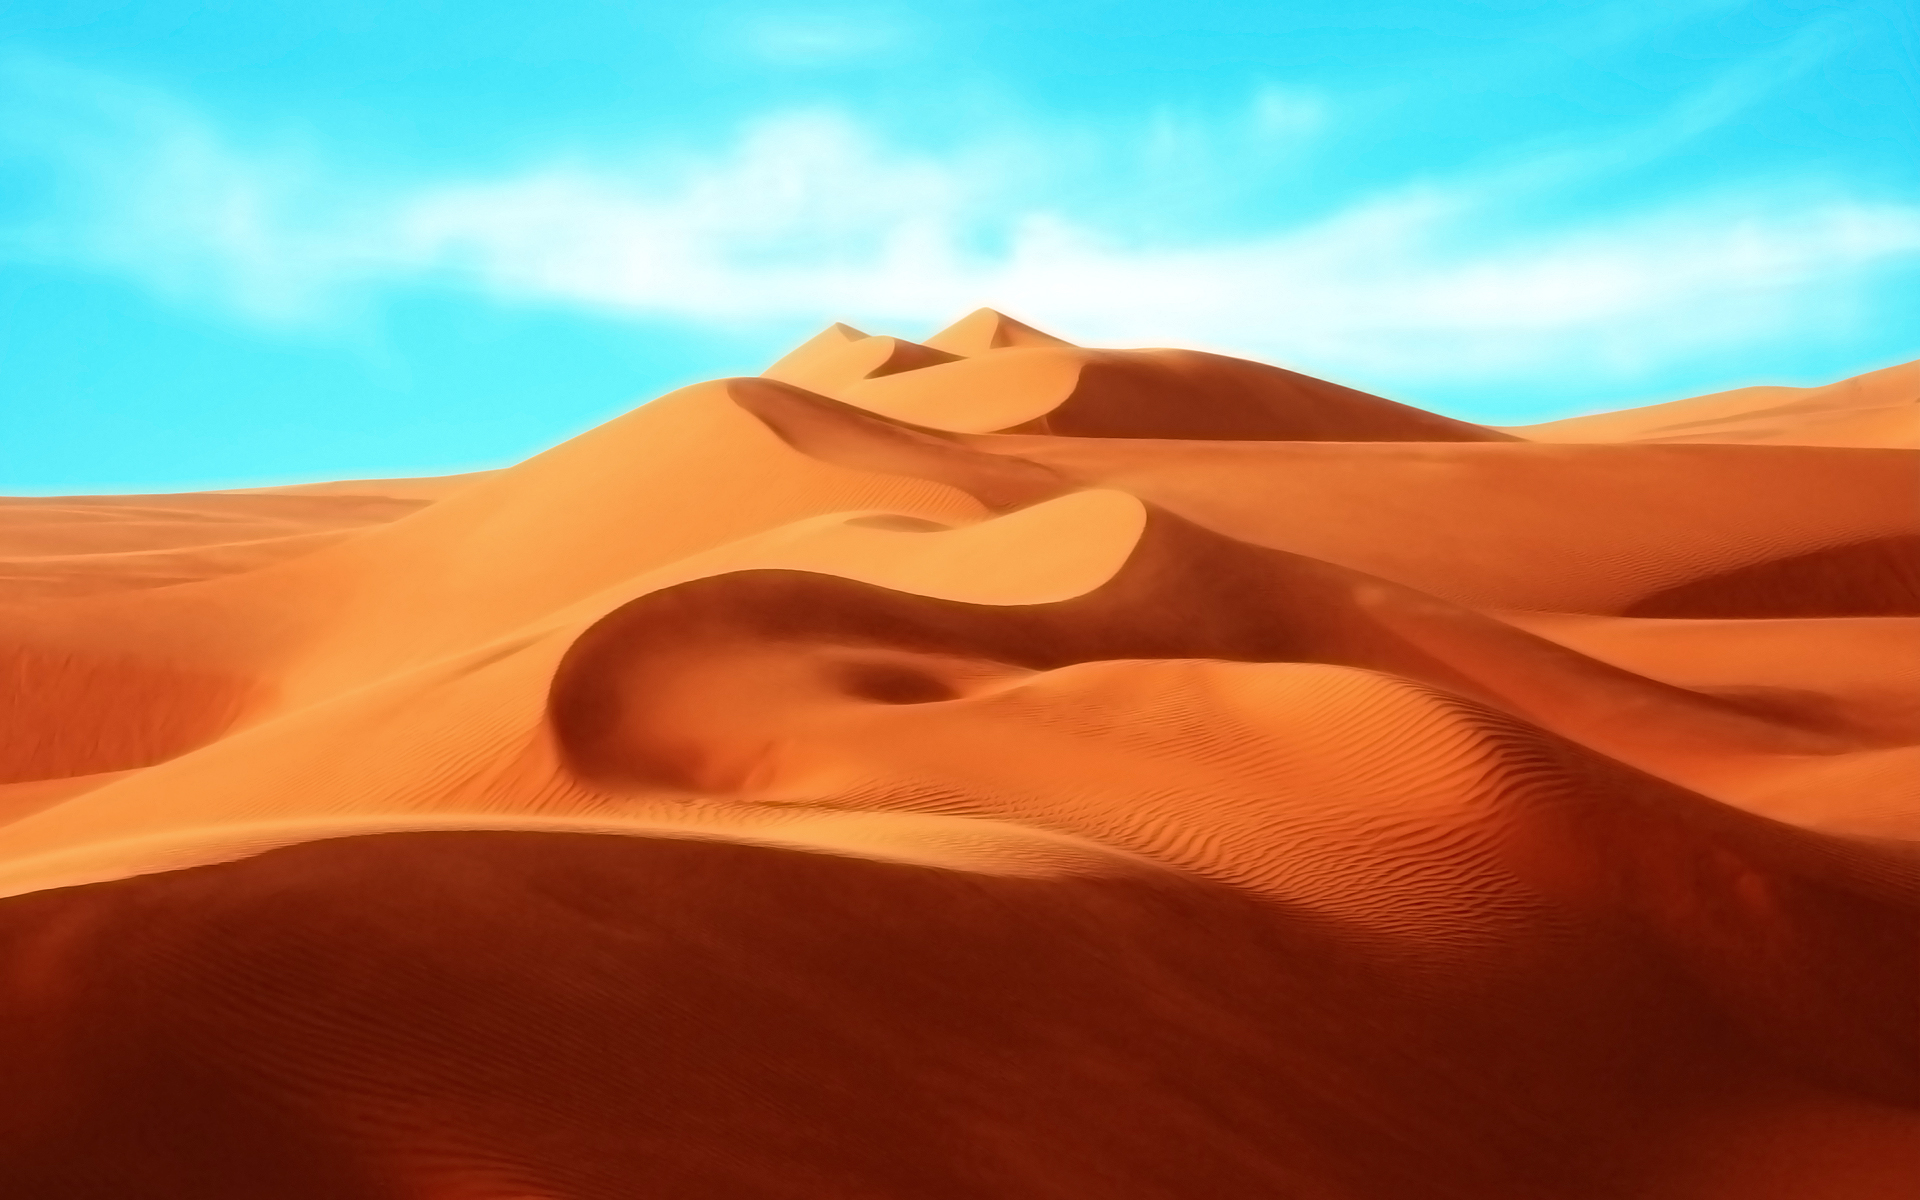 Curved Lines of Sand Hills in a Desert 254.2 Kb